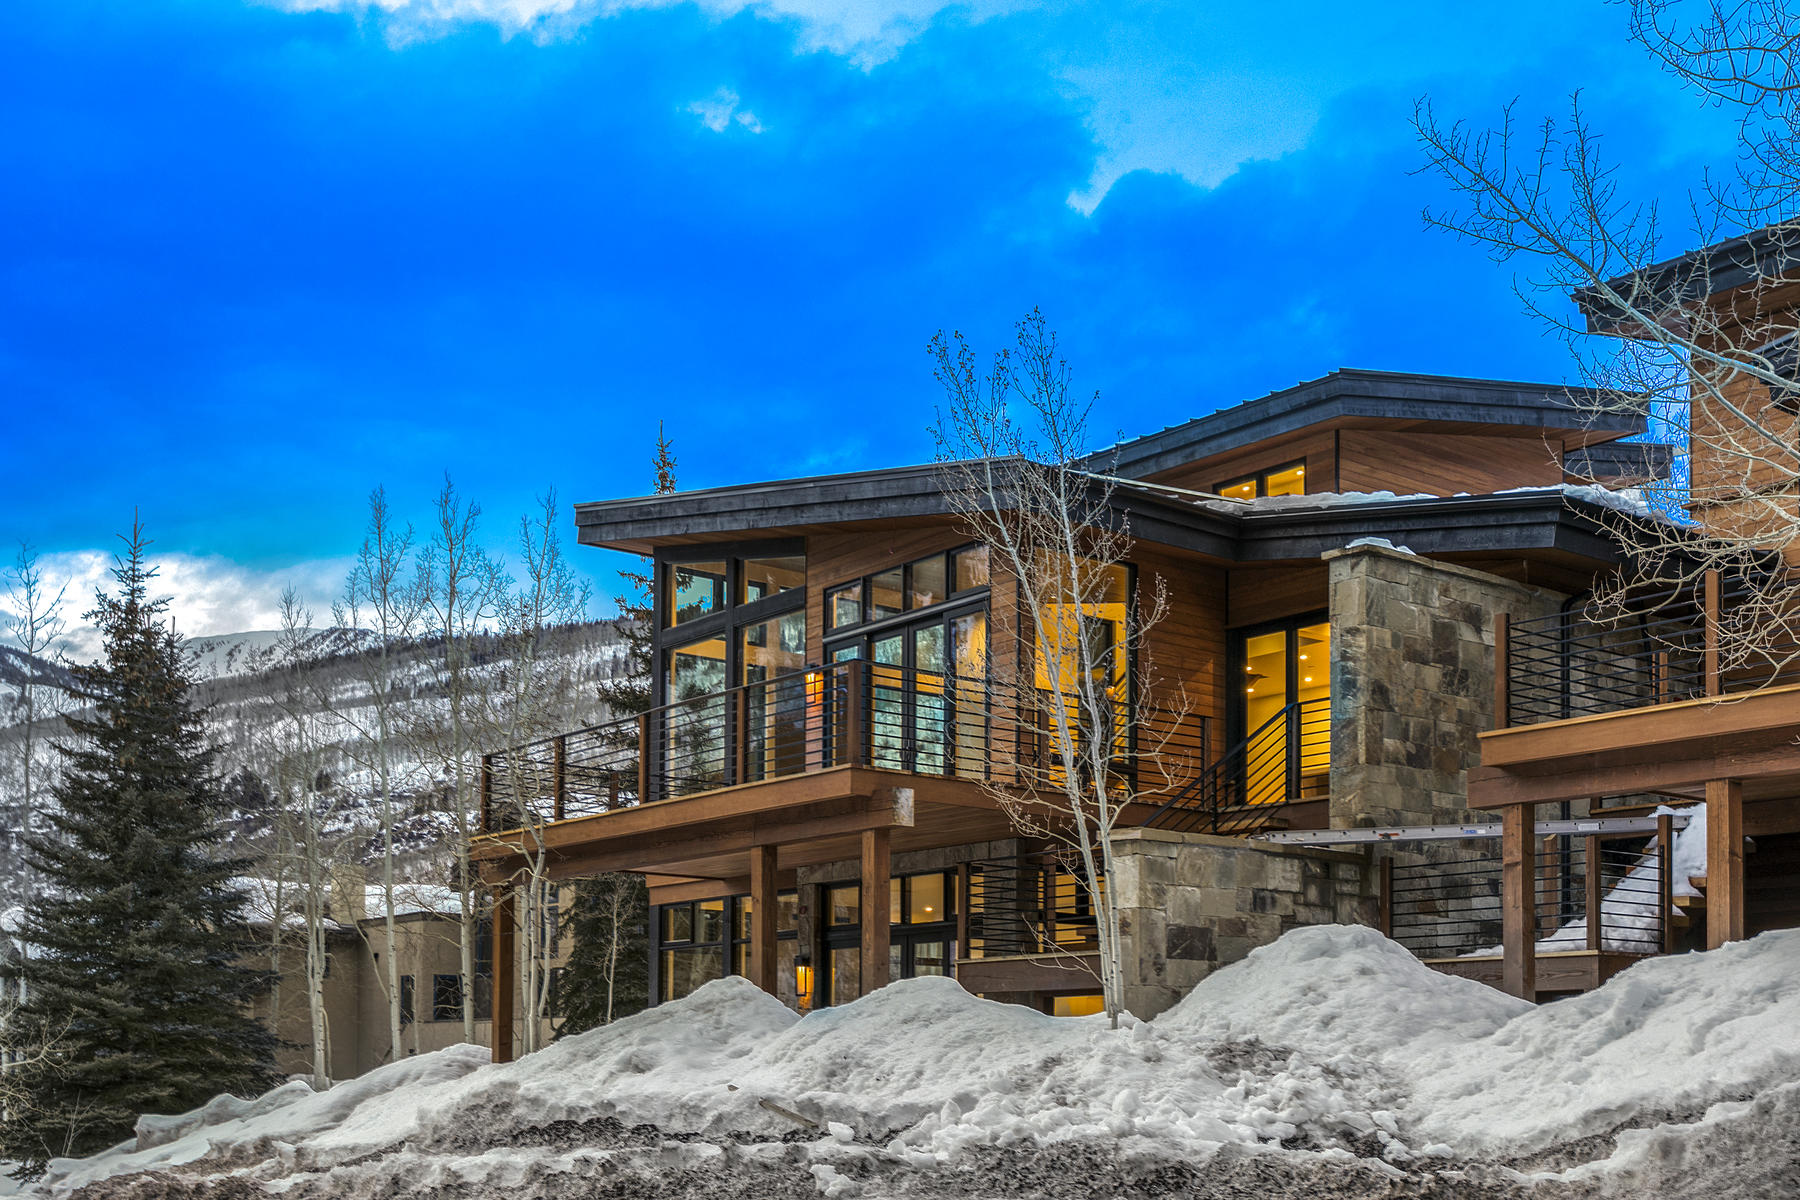 Duplex for Active at The future of East Vail architecture and design has arrived! 4271 Columbine Drive Vail, Colorado 81657 United States